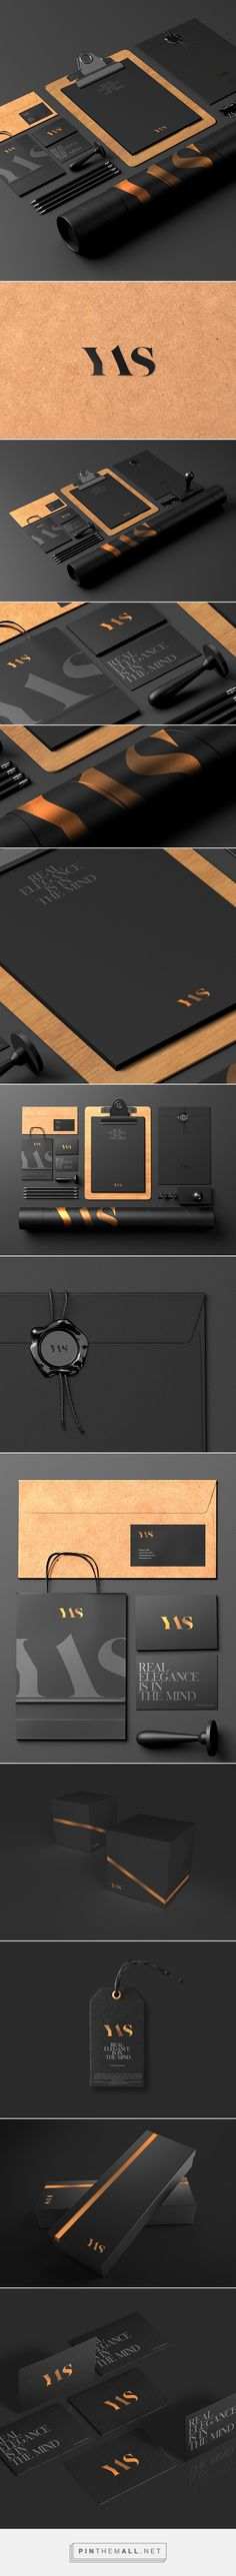 YAS - accessories for men on Behance by Sebastian Bednarek curated by Packaging Diva PD. This is gorgeous identity packaging branding created via hhttps://www.behance.net/gallery/23412087/YAS-accessories-for-men